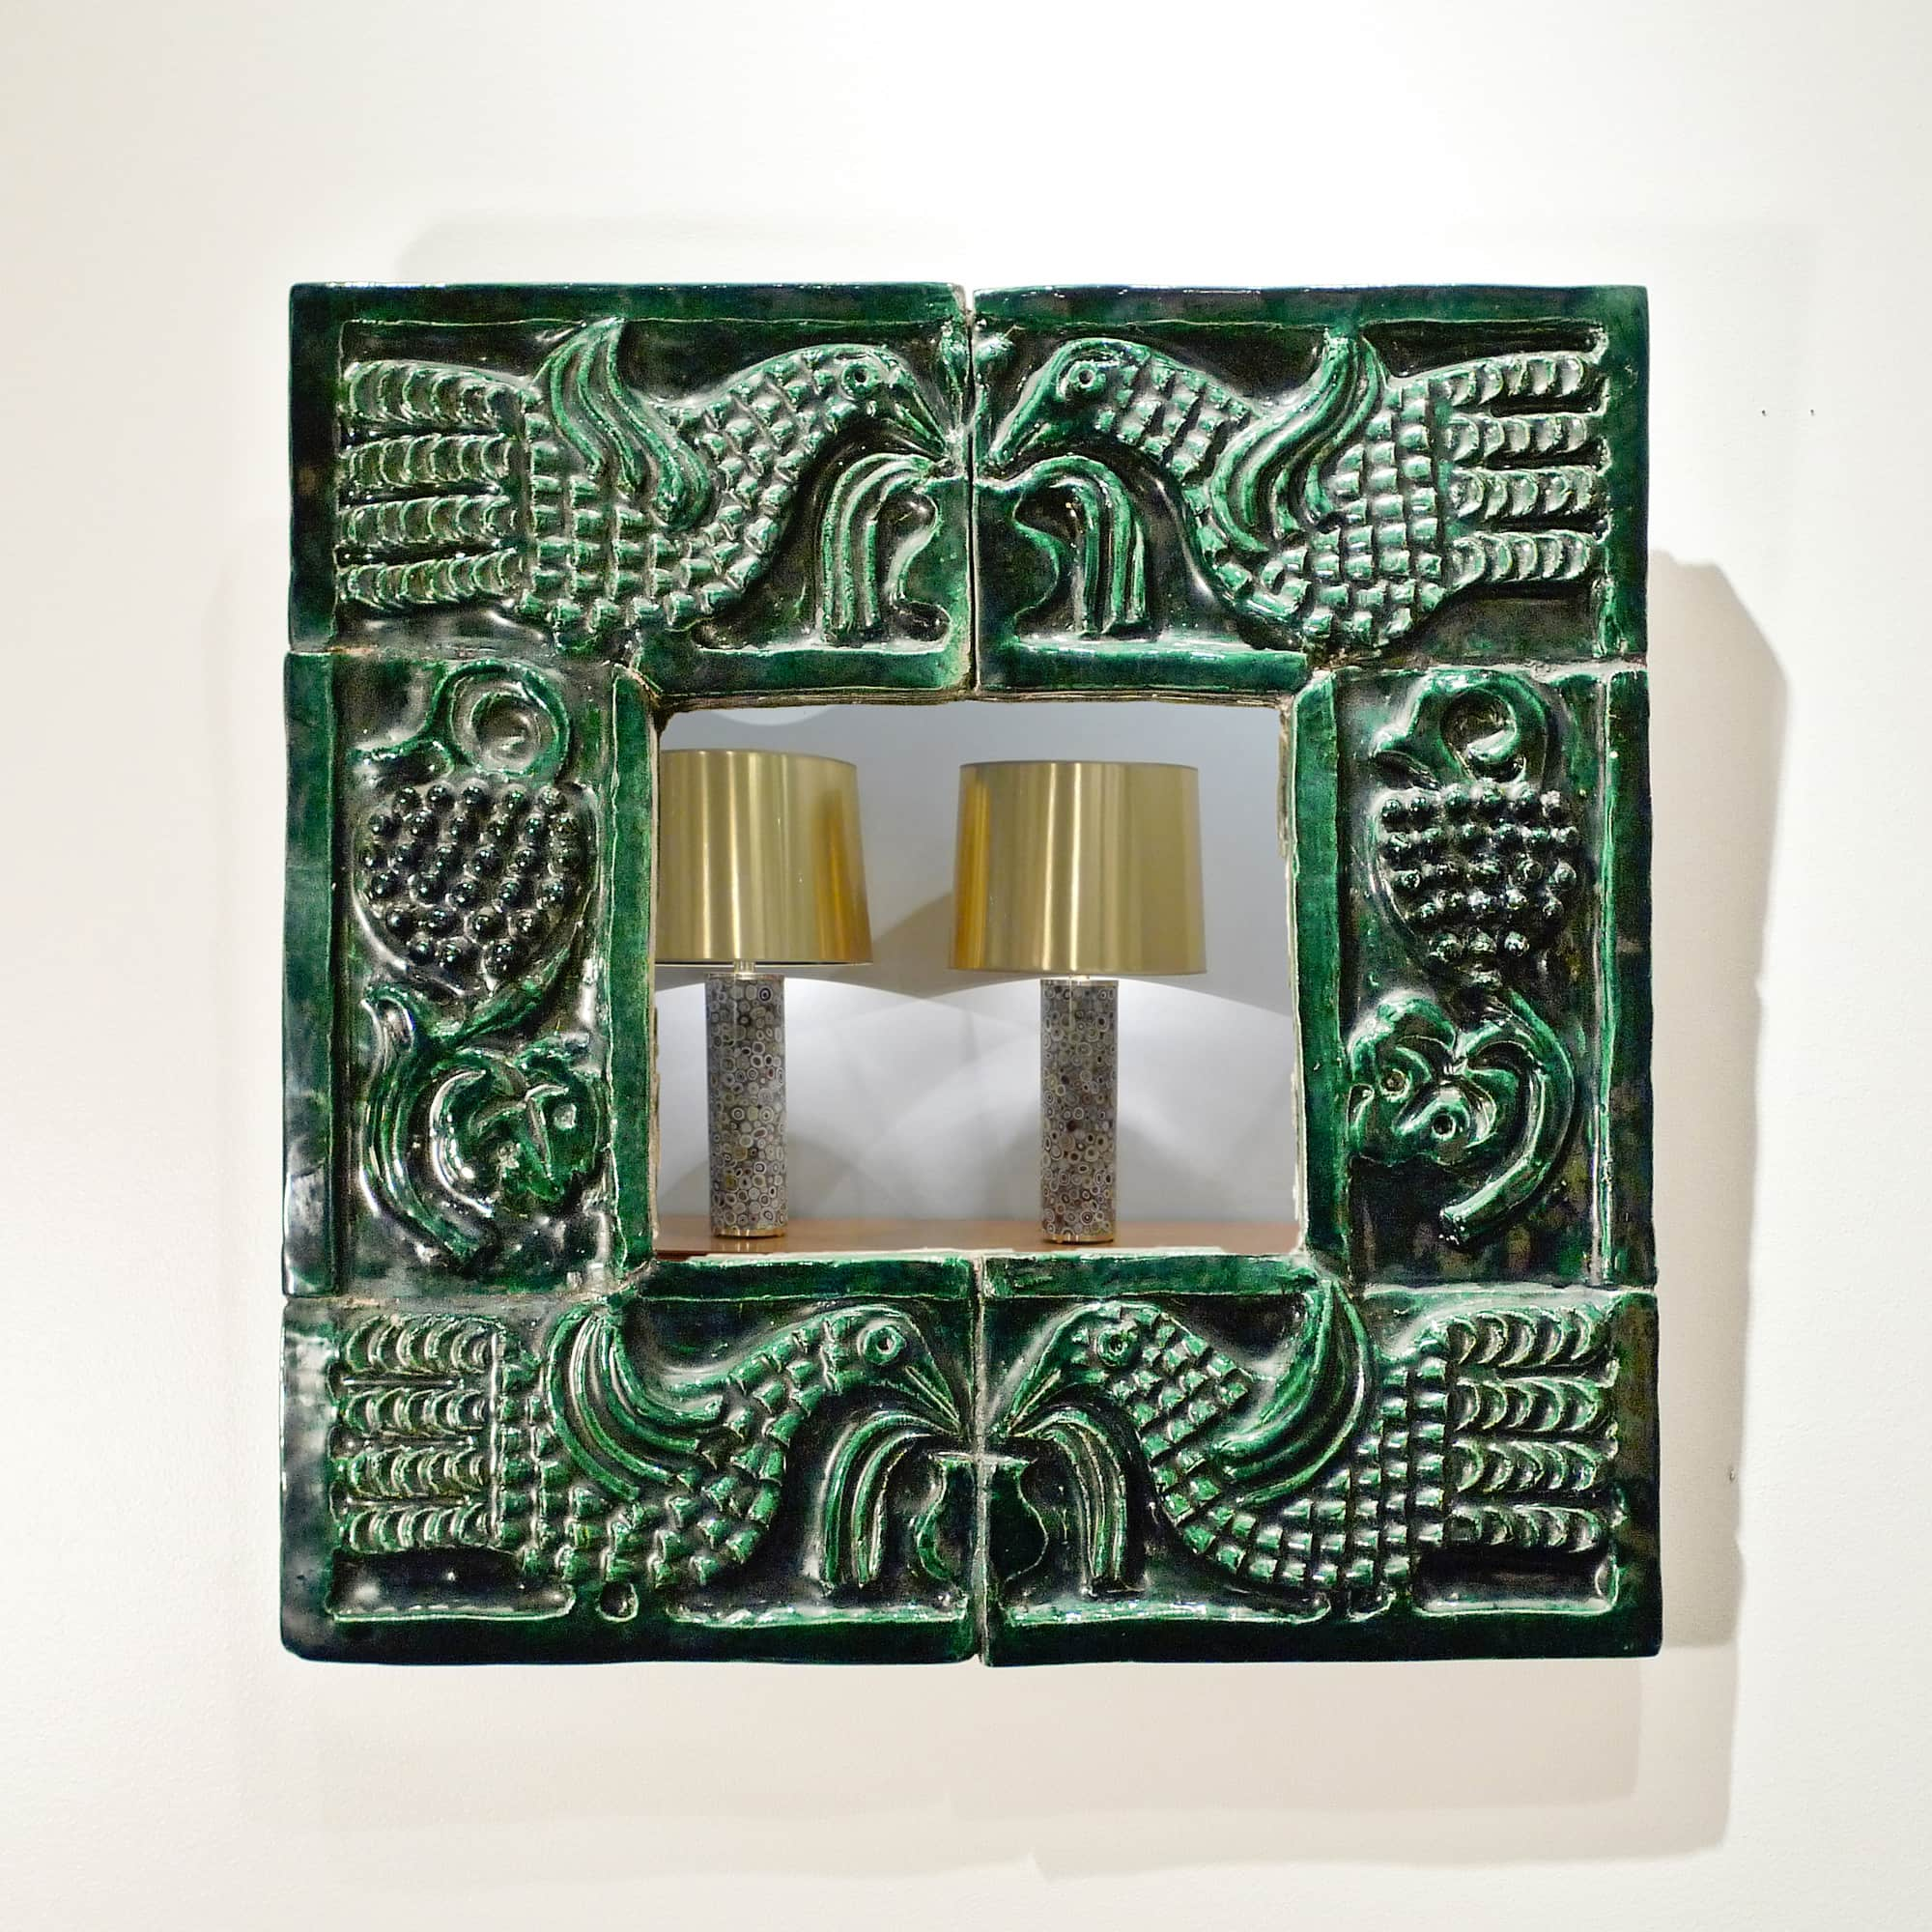 Georges jouve ceramic mirror galerie chastel mar chal for Miroir jouve